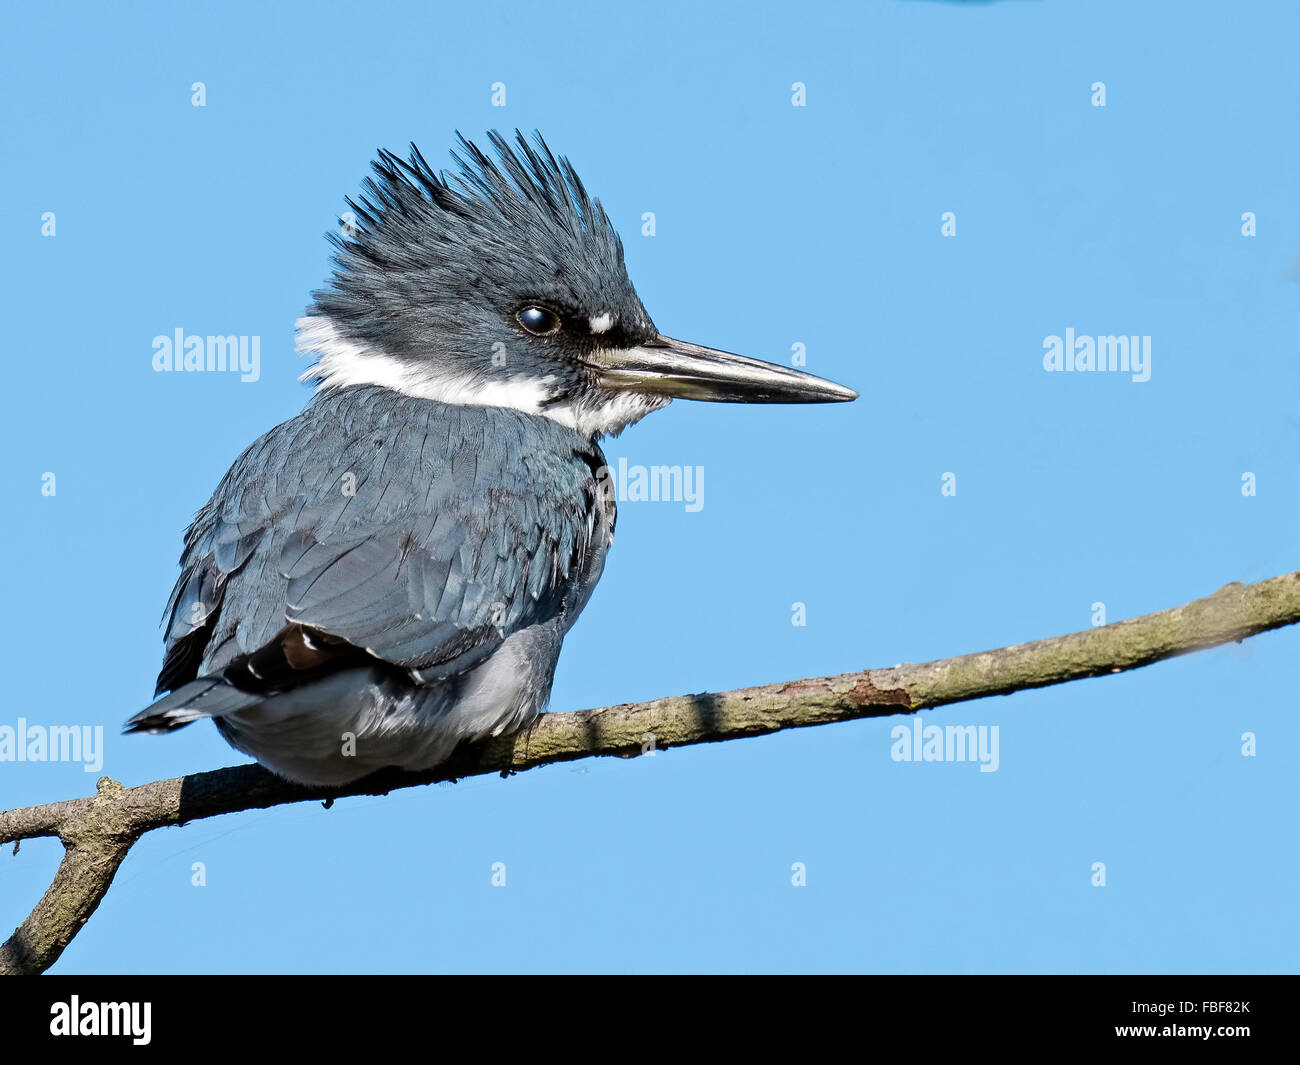 Belted Kingfisher - Stock Image